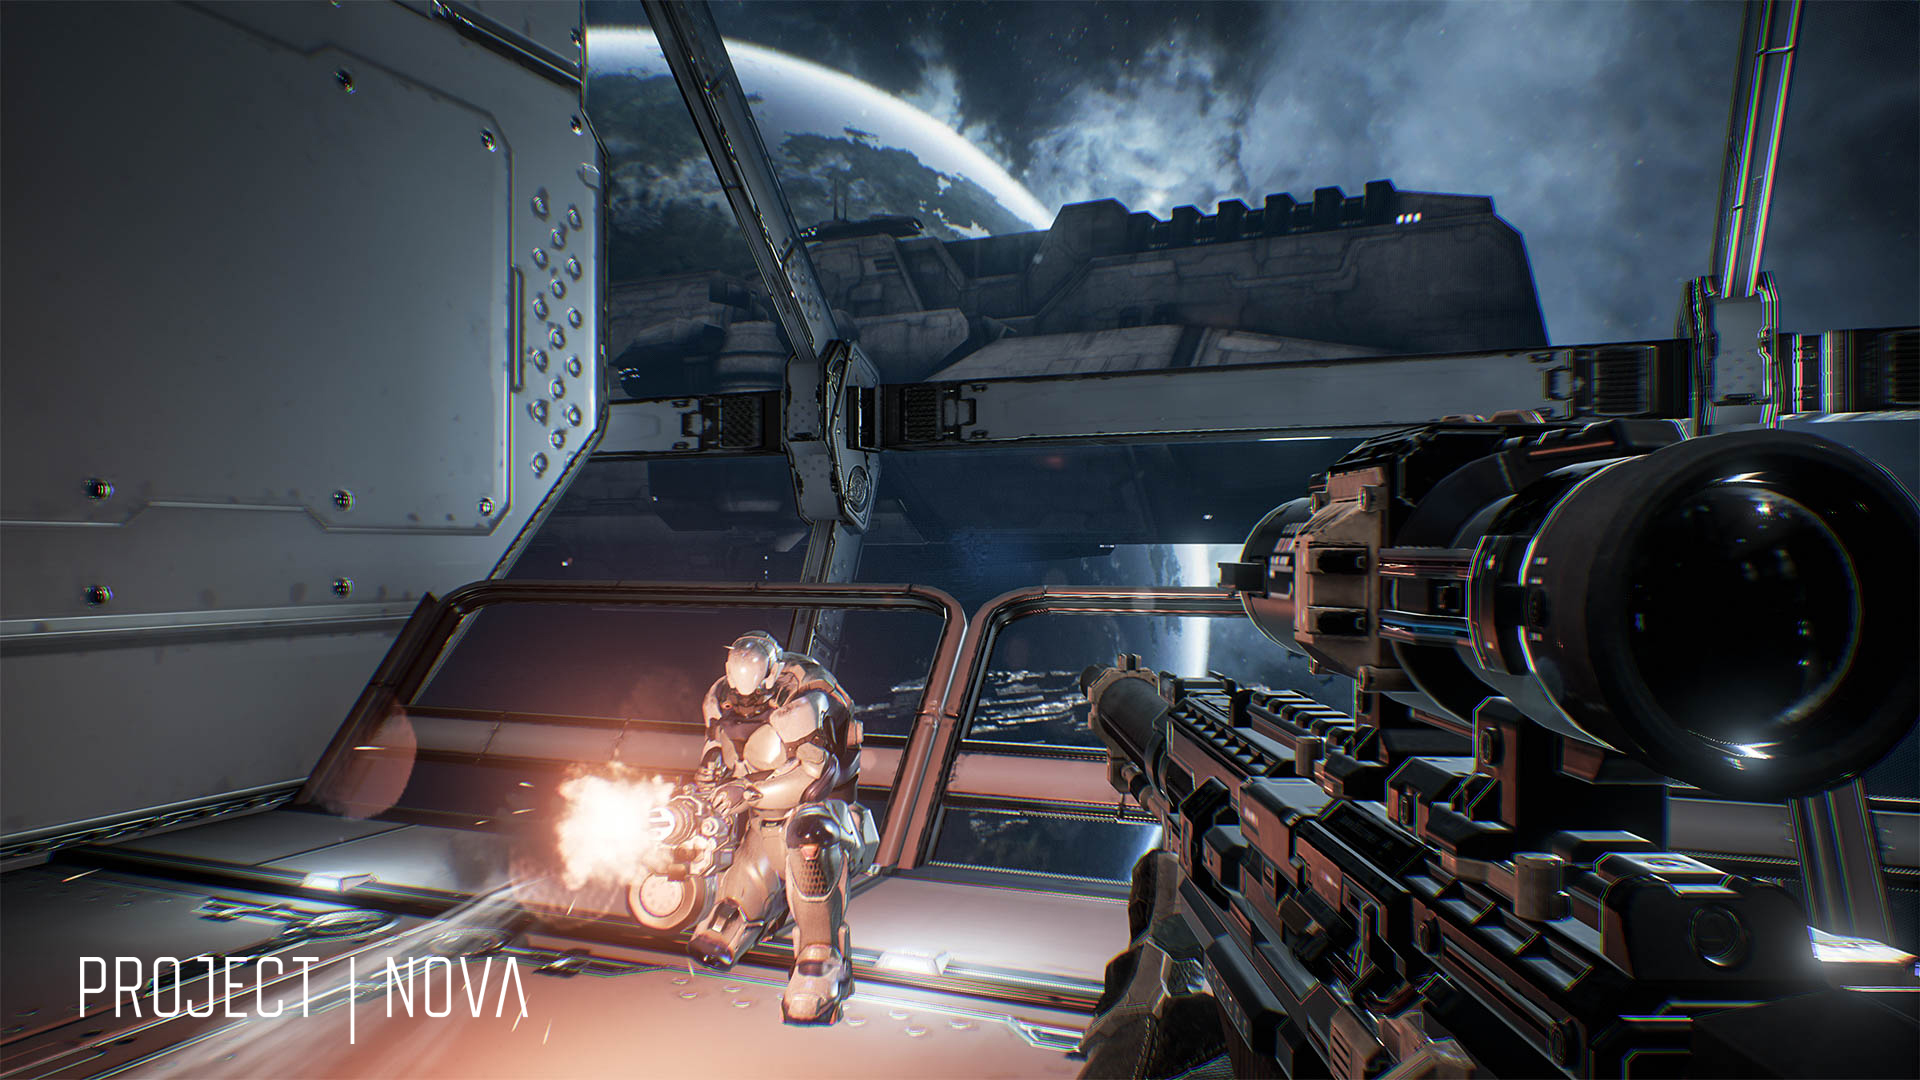 Htc Vive System Requirements >> Project Nova Is CCP's New F2P FPS Set in EVE's Universe